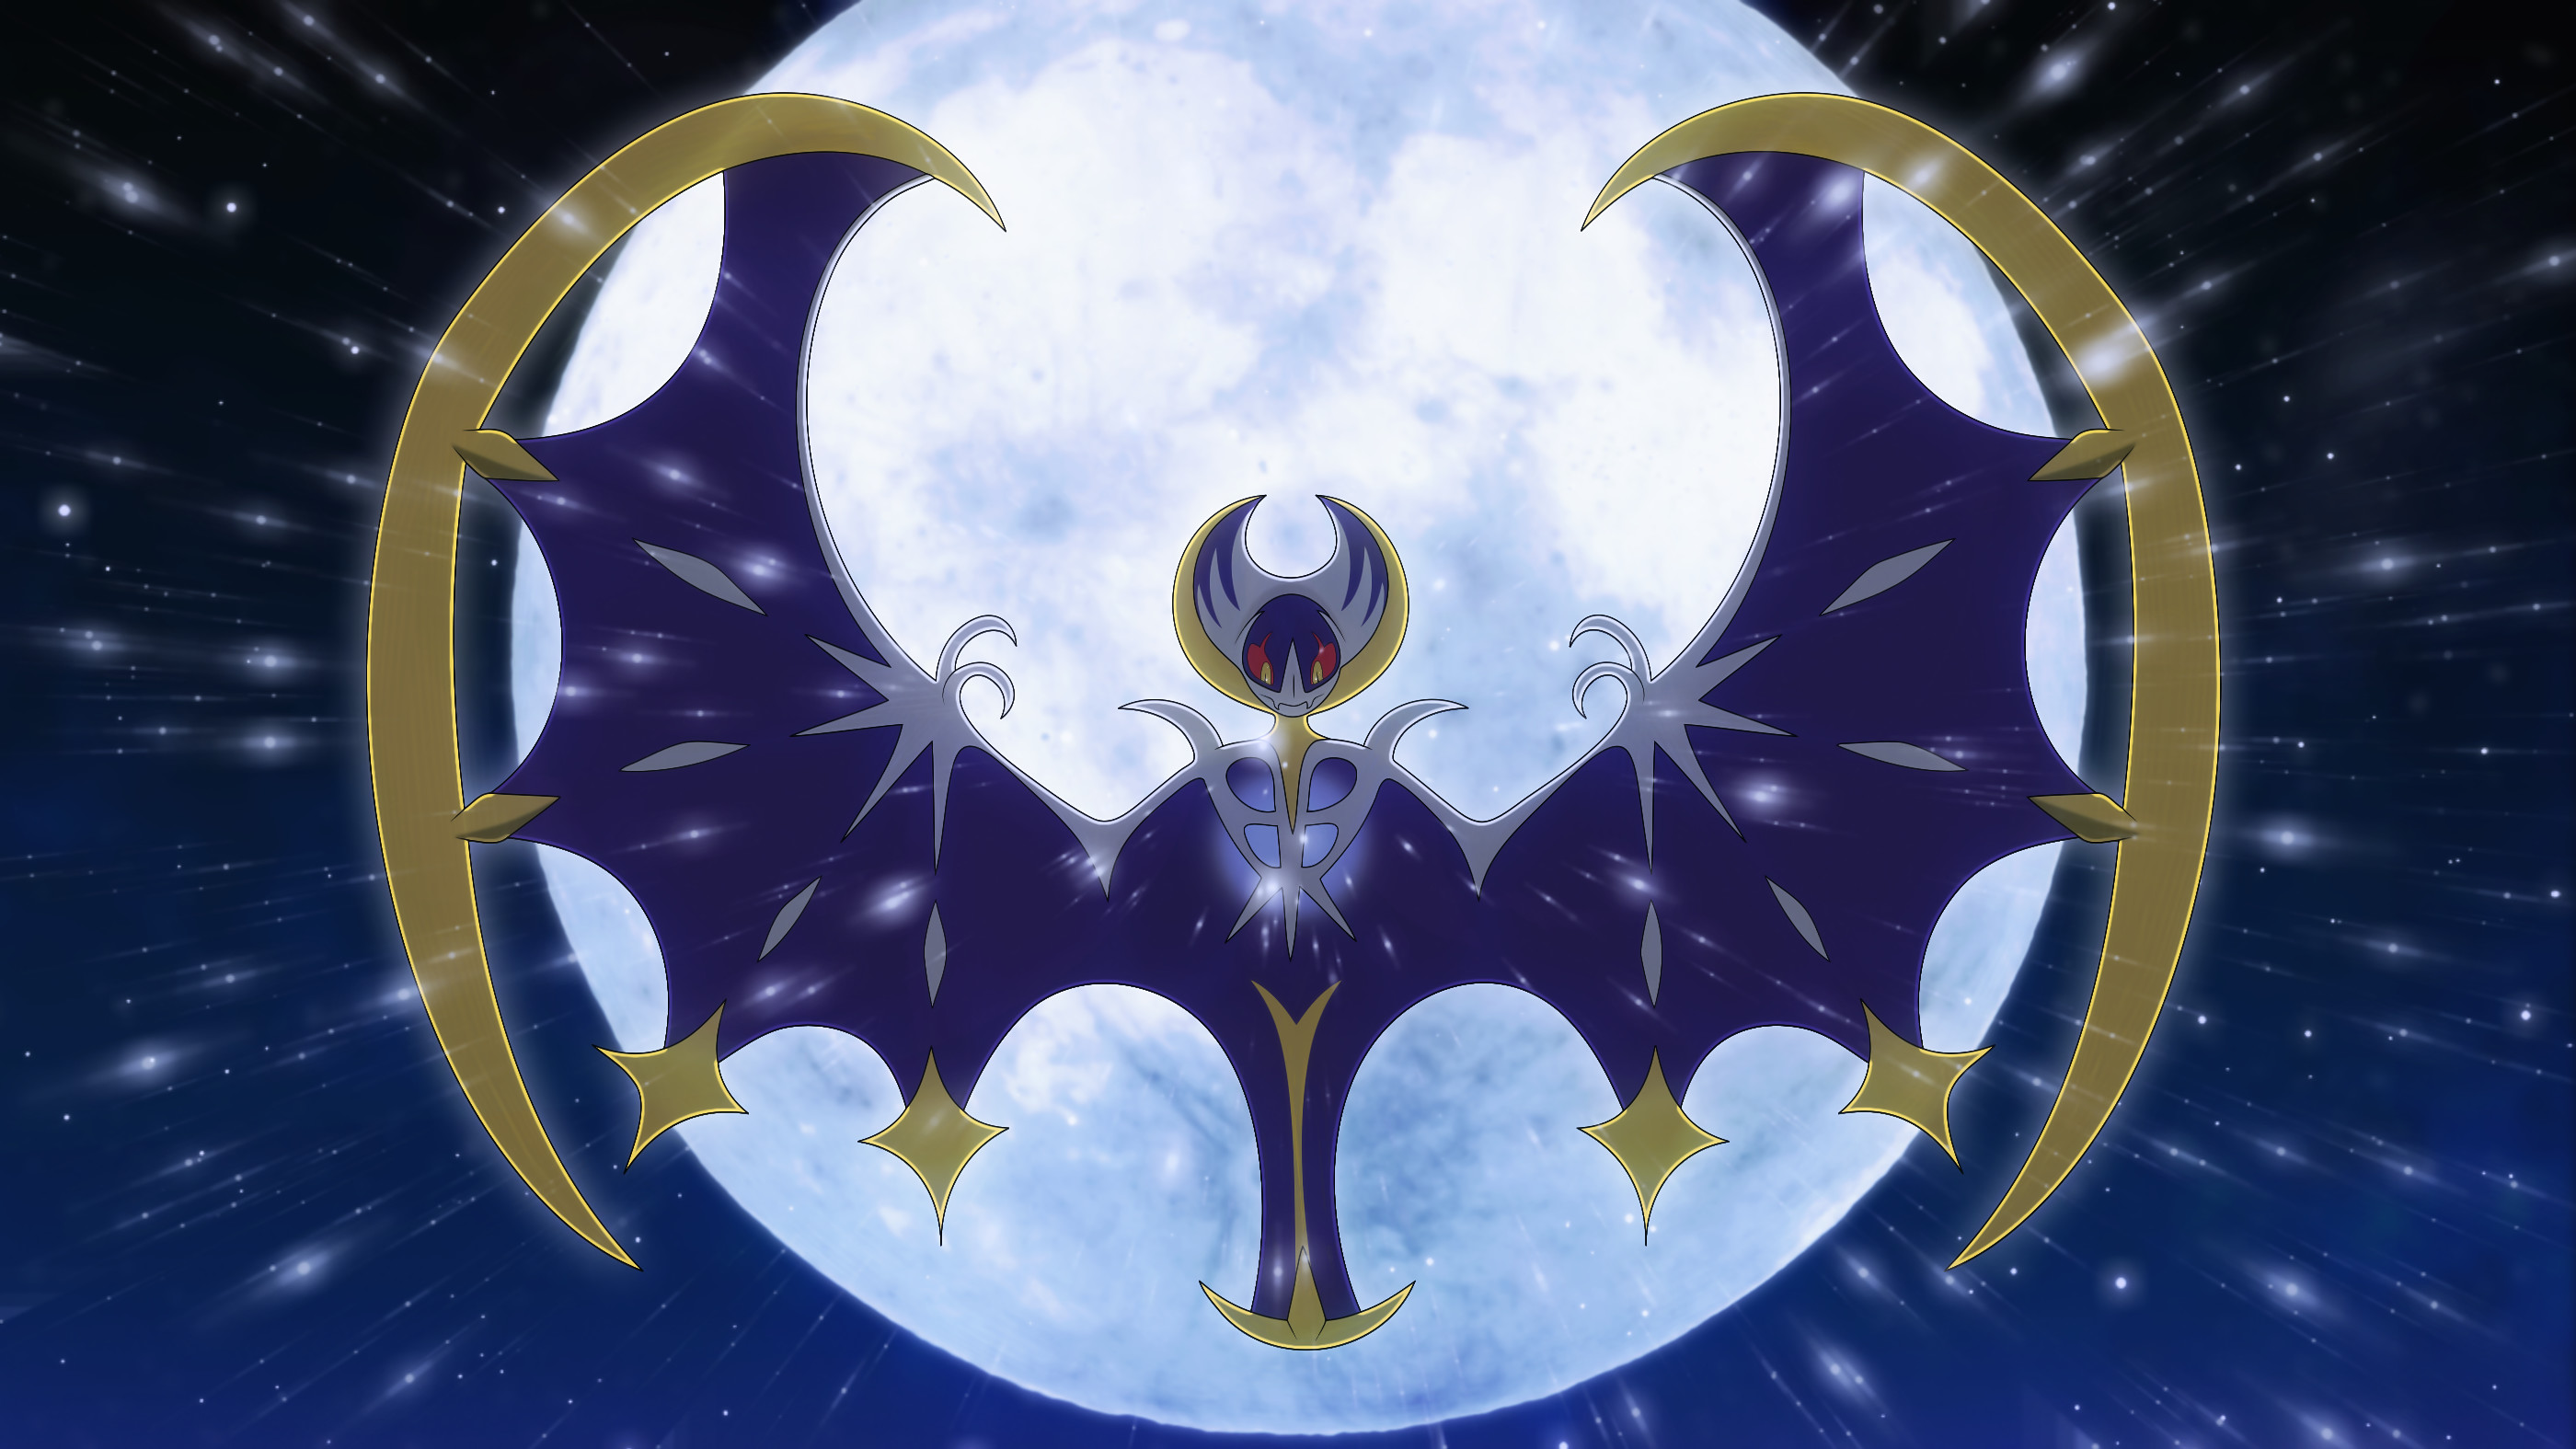 2800x1575 Video Game - Pokémon Sun and Moon Lunala (Pokémon) Pokémon Pokémon Moon  Wallpaper